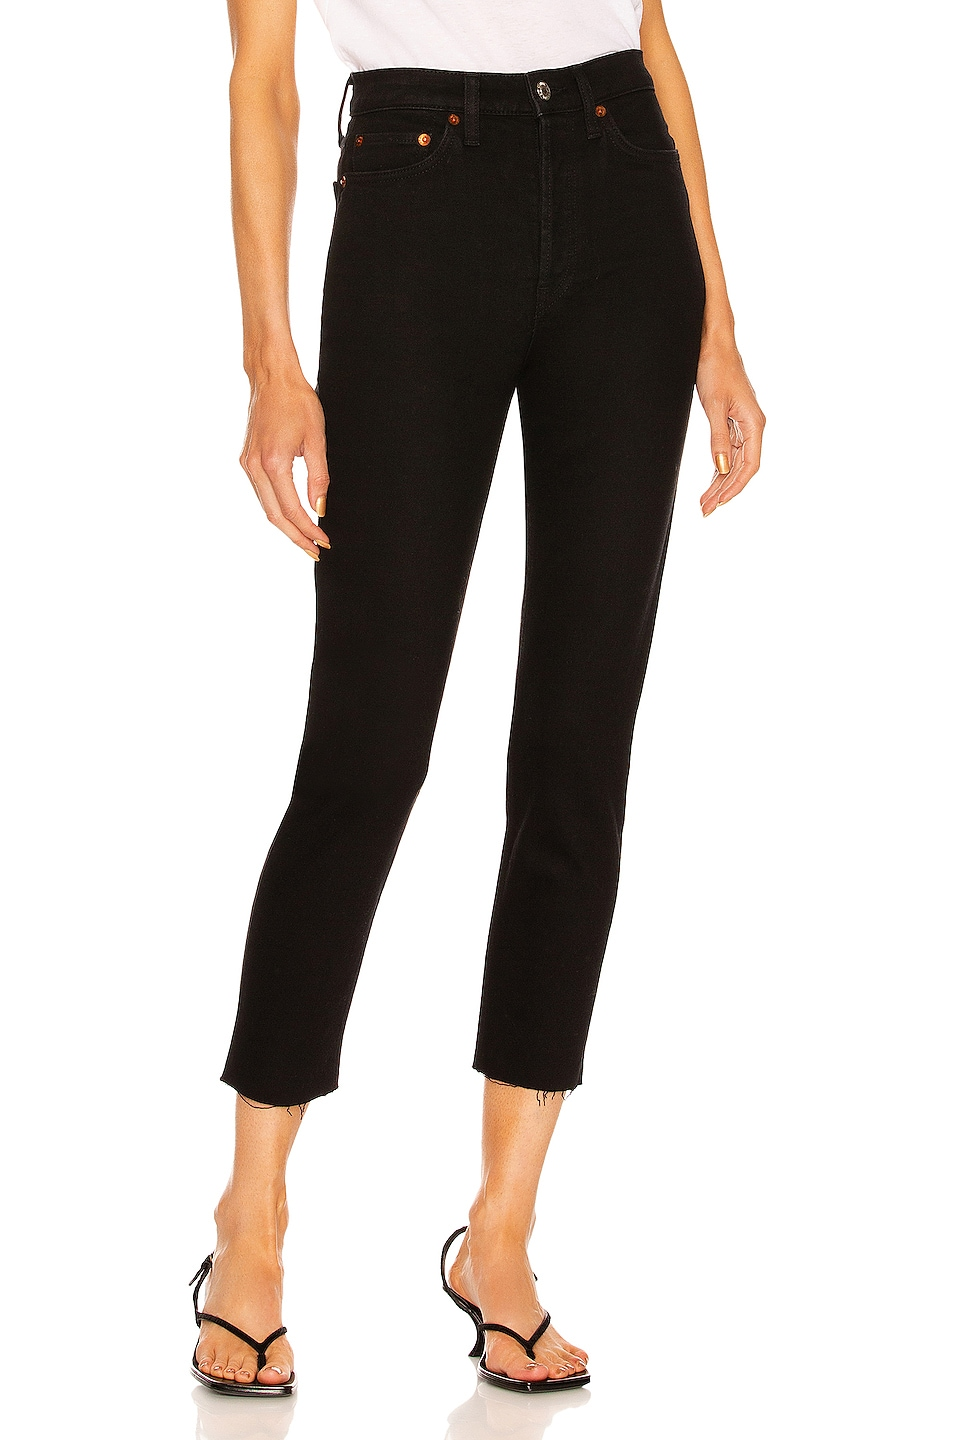 Image 1 of RE/DONE ORIGINALS High Rise Ankle Crop in Black